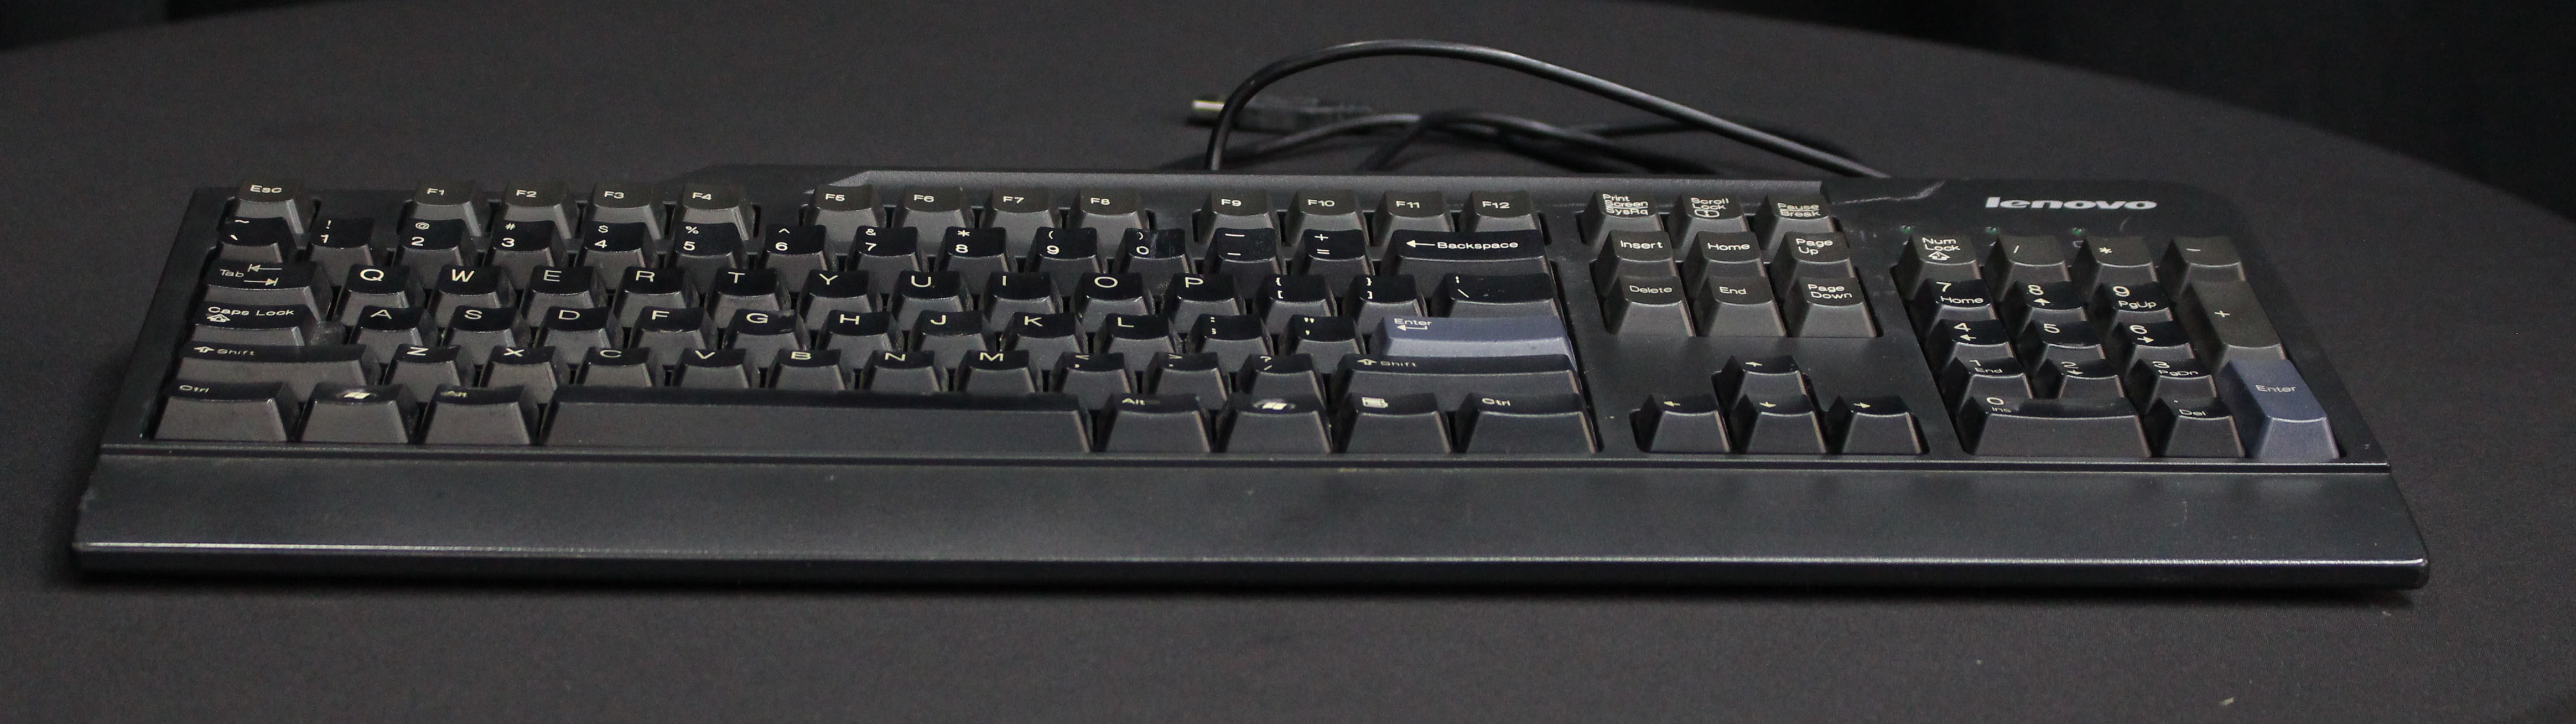 LENOVO DESKTOP <br/>KEYBOARD